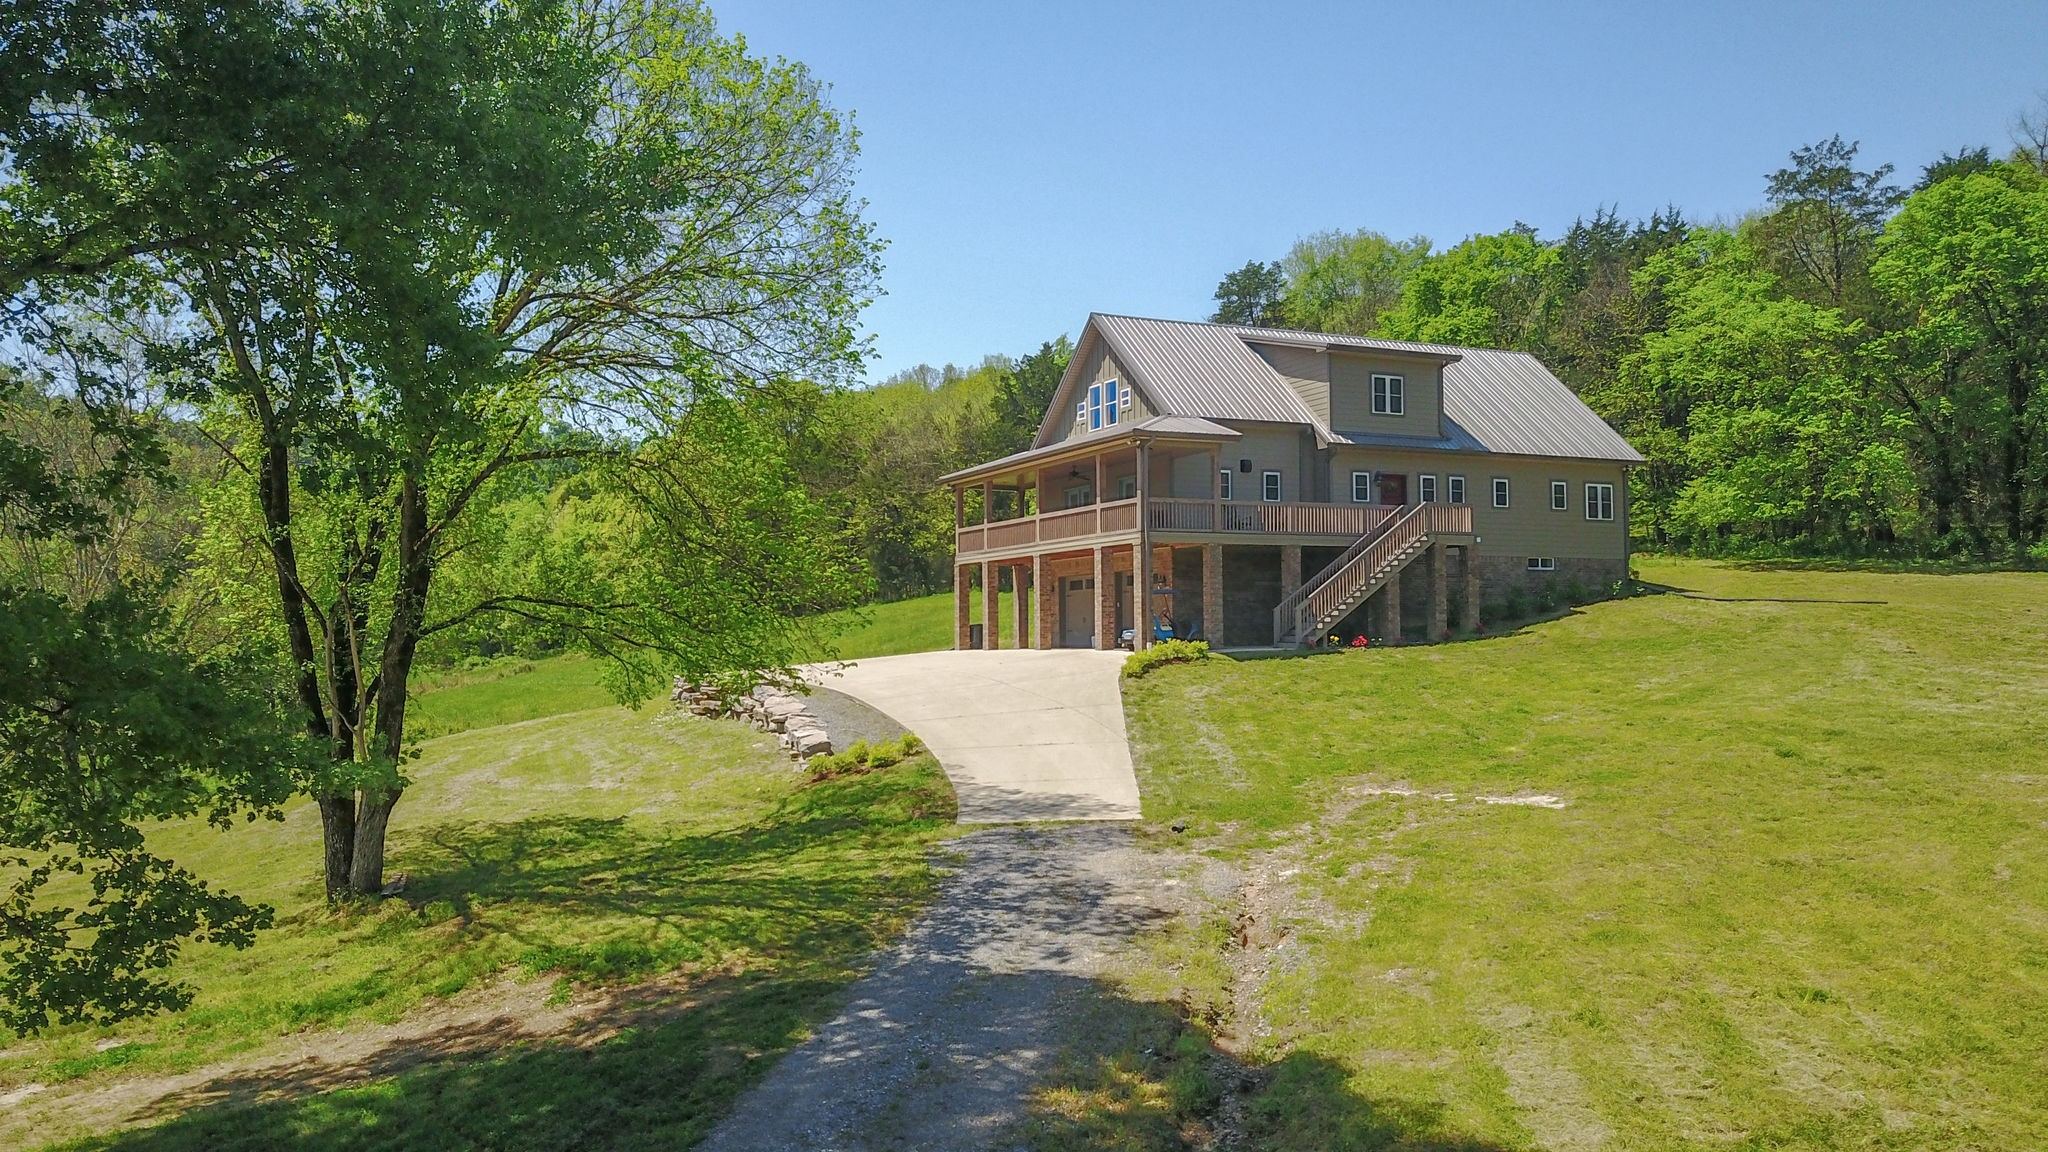 453 Herring Hollow Ln Property Photo - Gainesboro, TN real estate listing